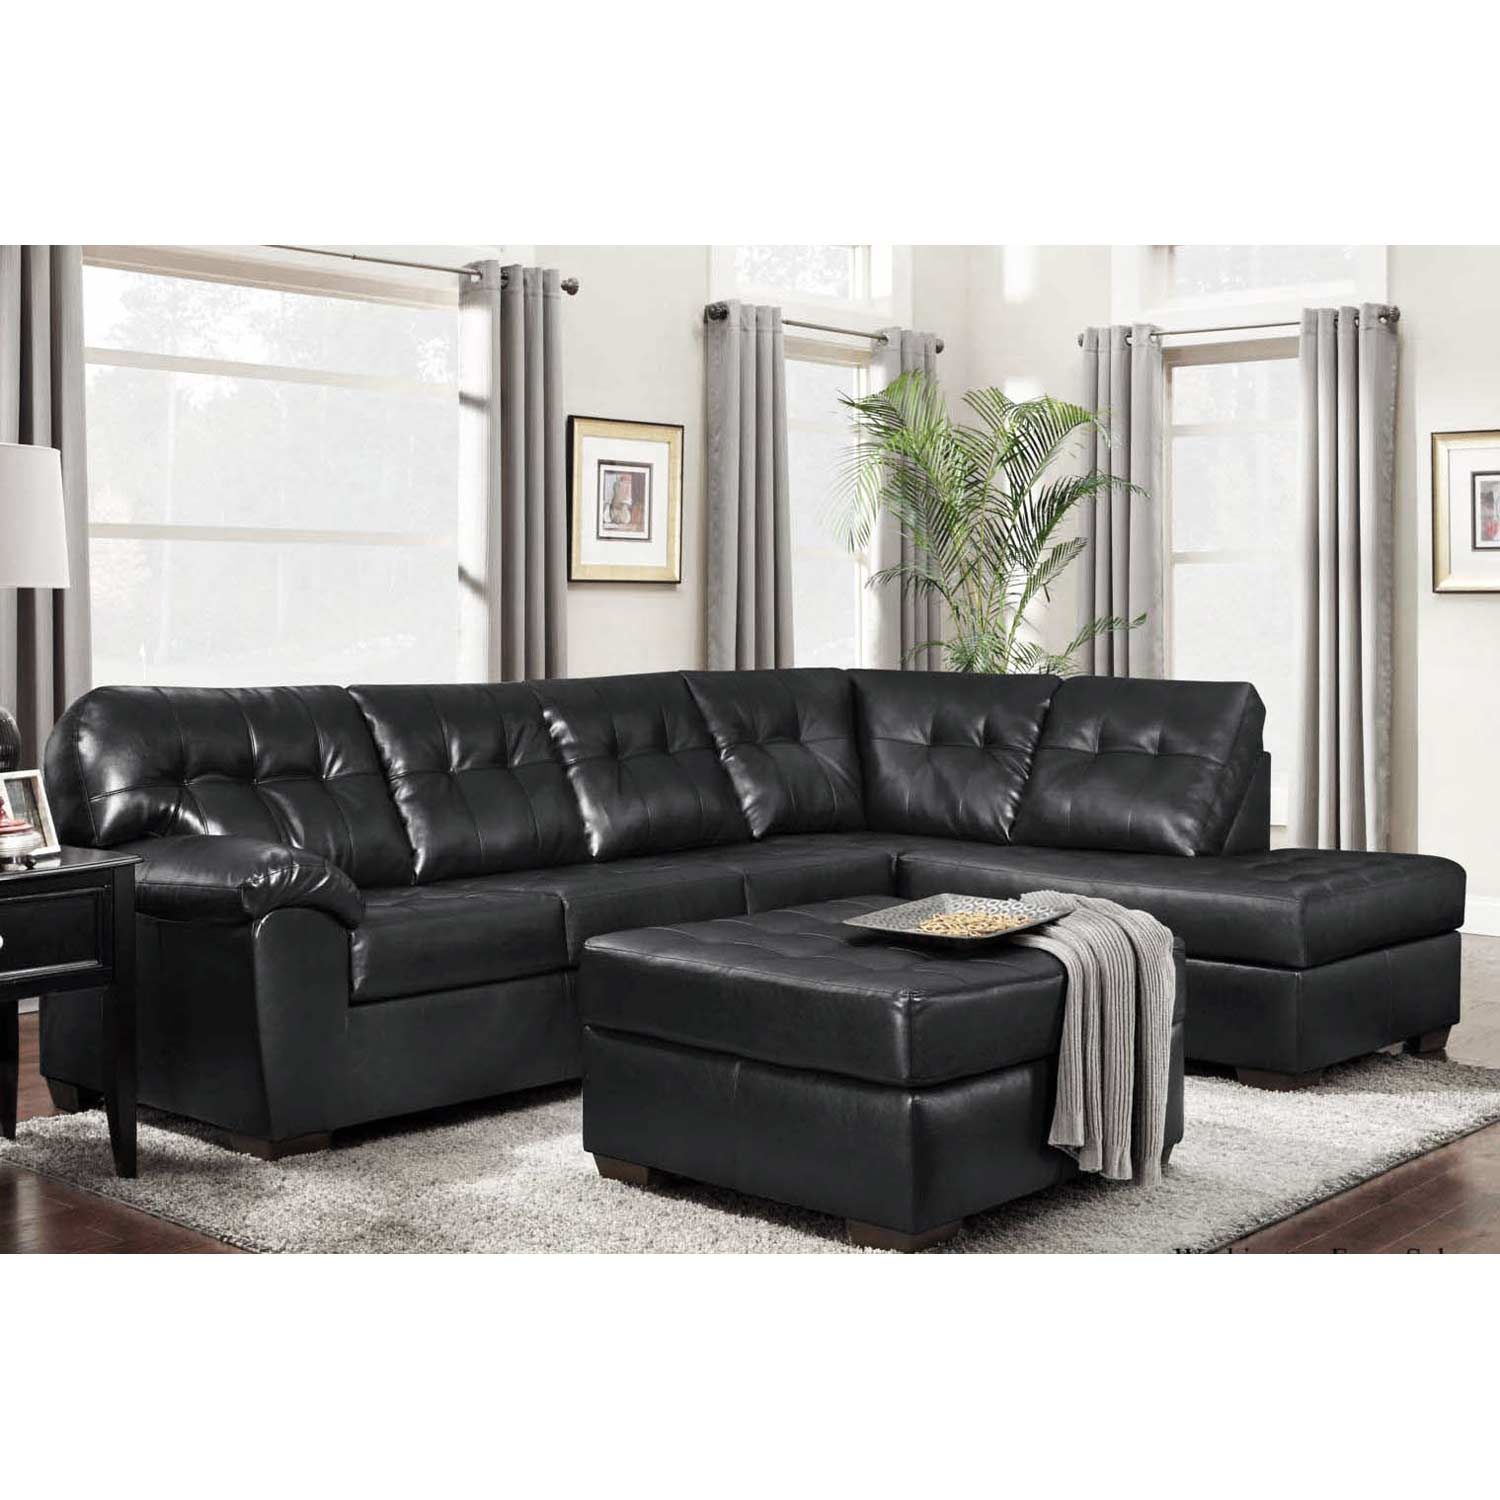 Rachel Tufted Chaise Sectional Sofa - Contempo Black Upholstery